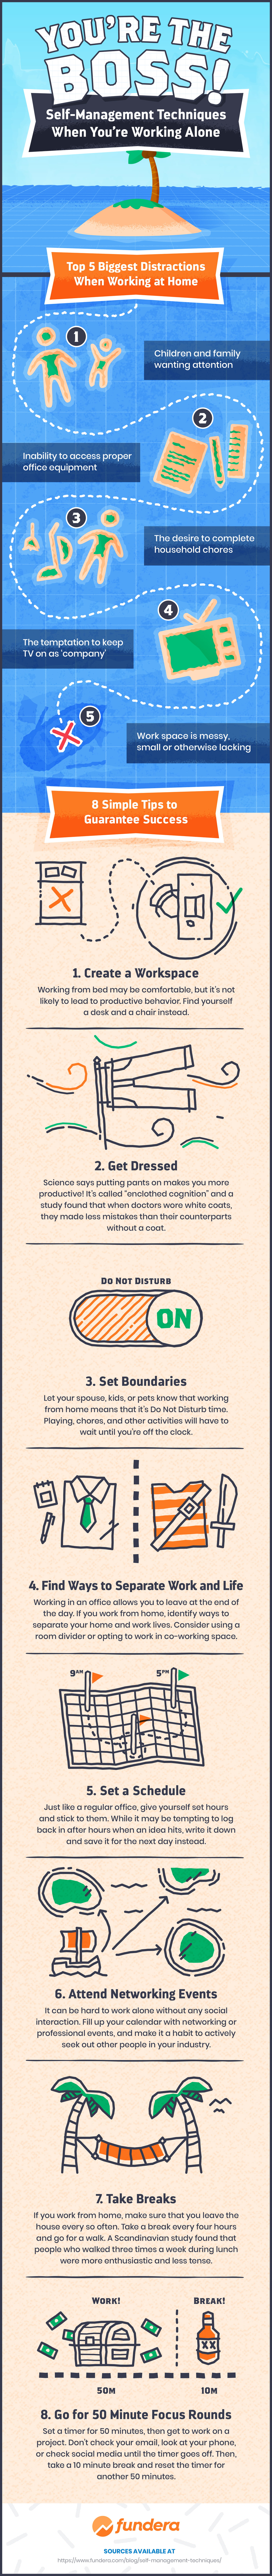 stay-motivated-while-working-from-home-infographic